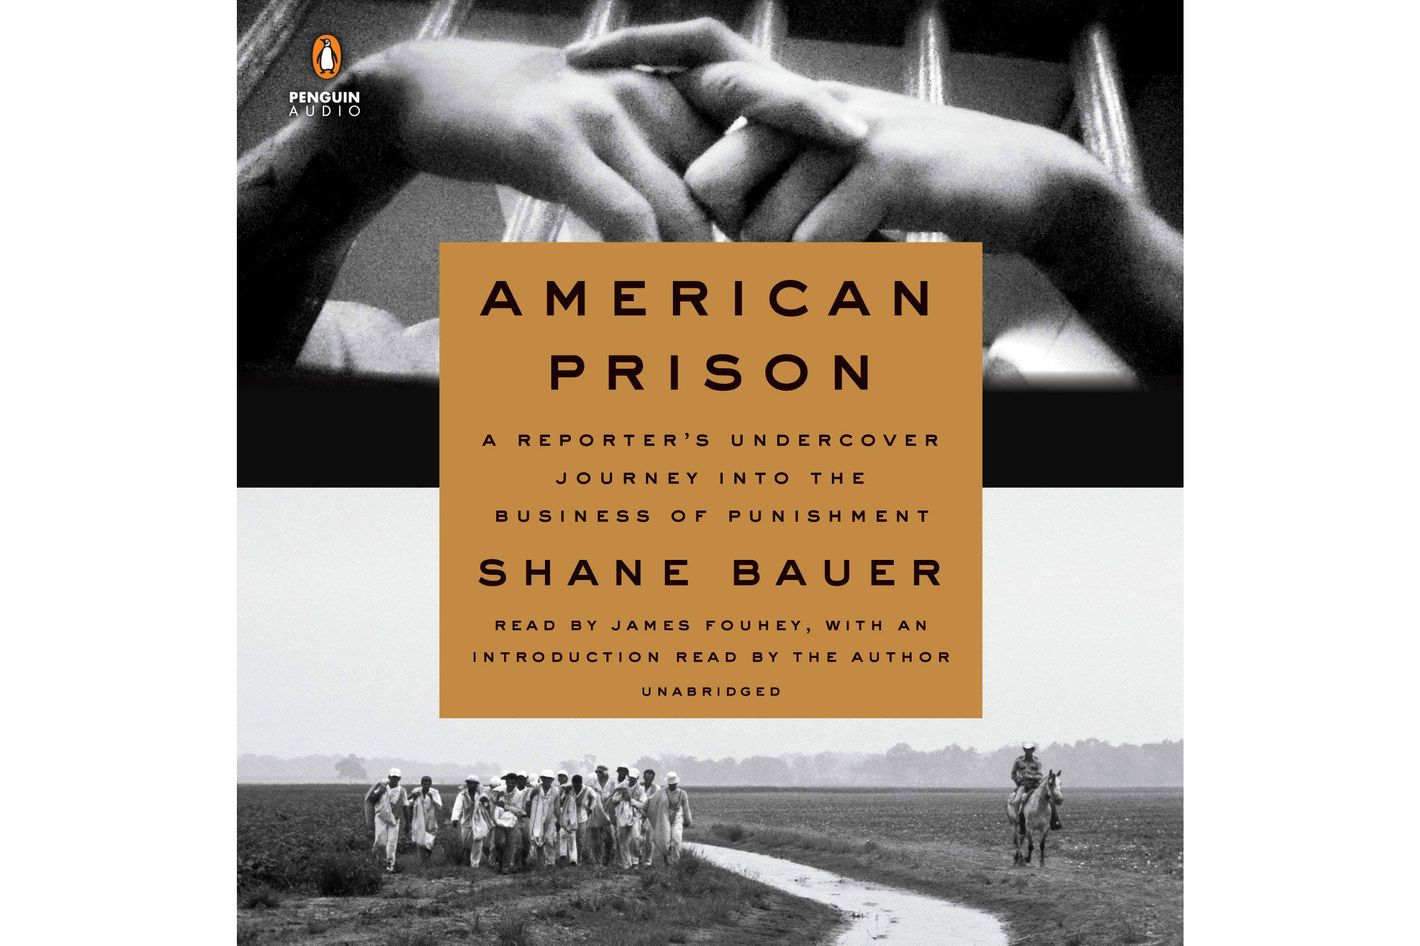 <em>American Prison: A Reporter's Undercover Journey Into the Business of Punishment</em>, by Shane Bauer, narrated by James Fouhey (Penguin Audio, Sept. 18), 10 hrs, 25 min.